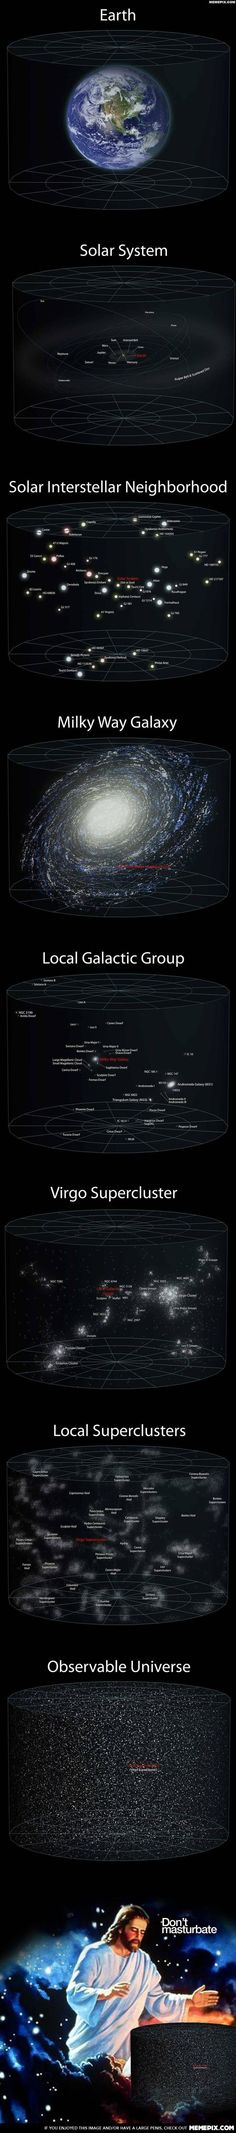 So, this is the universe as I understand it...